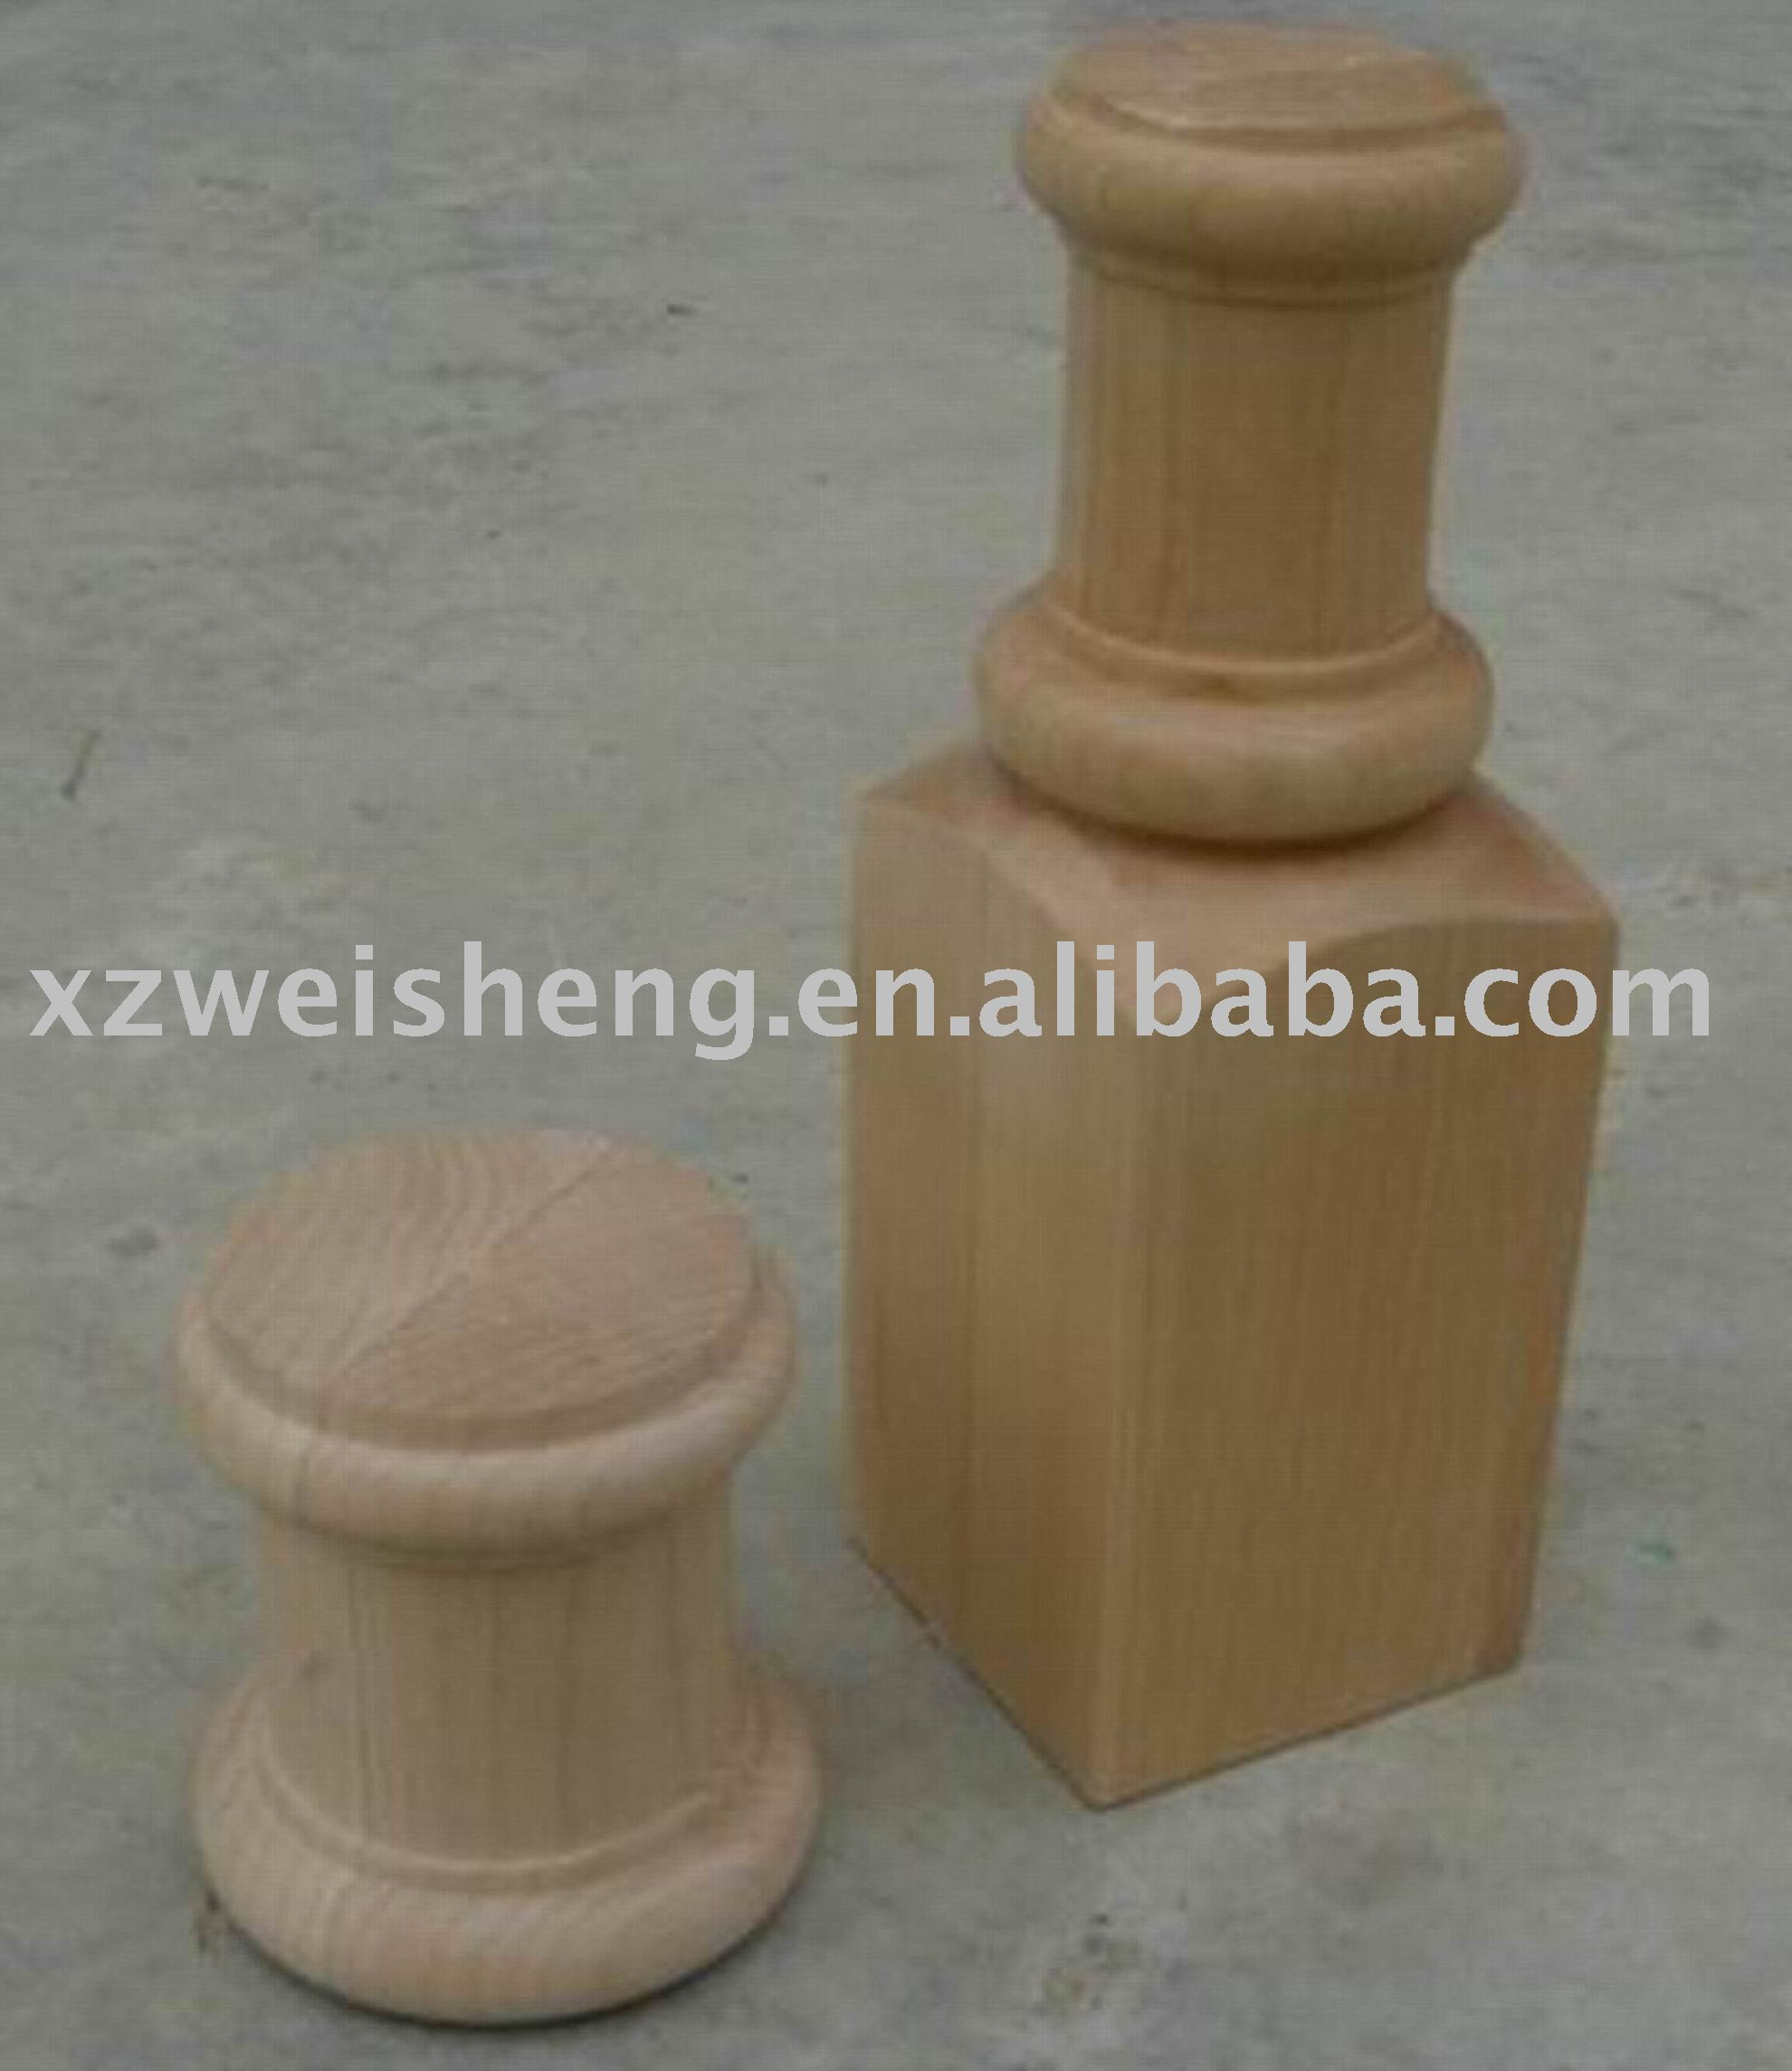 Wooden Furniture leg